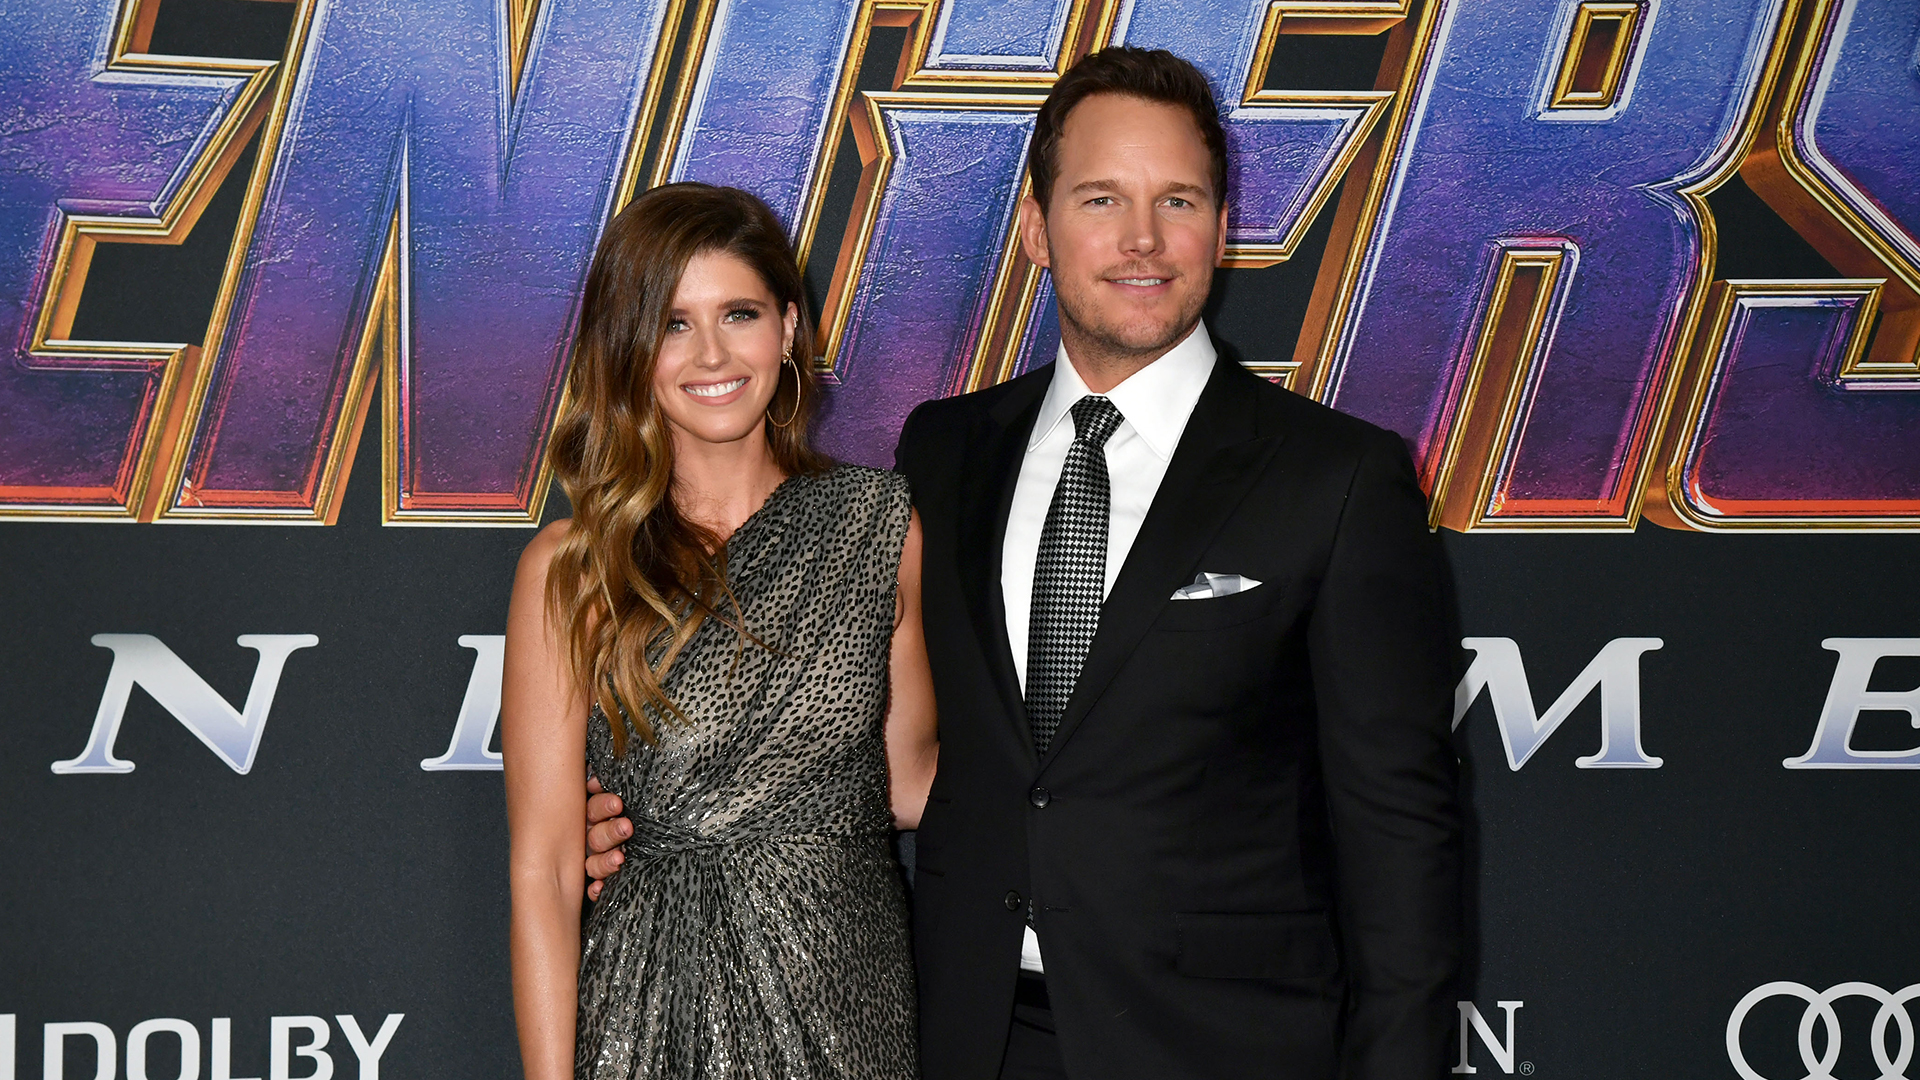 Chris Pratt, Katherine Schwarzenegger welcome first child together: 'We couldn't be happier'